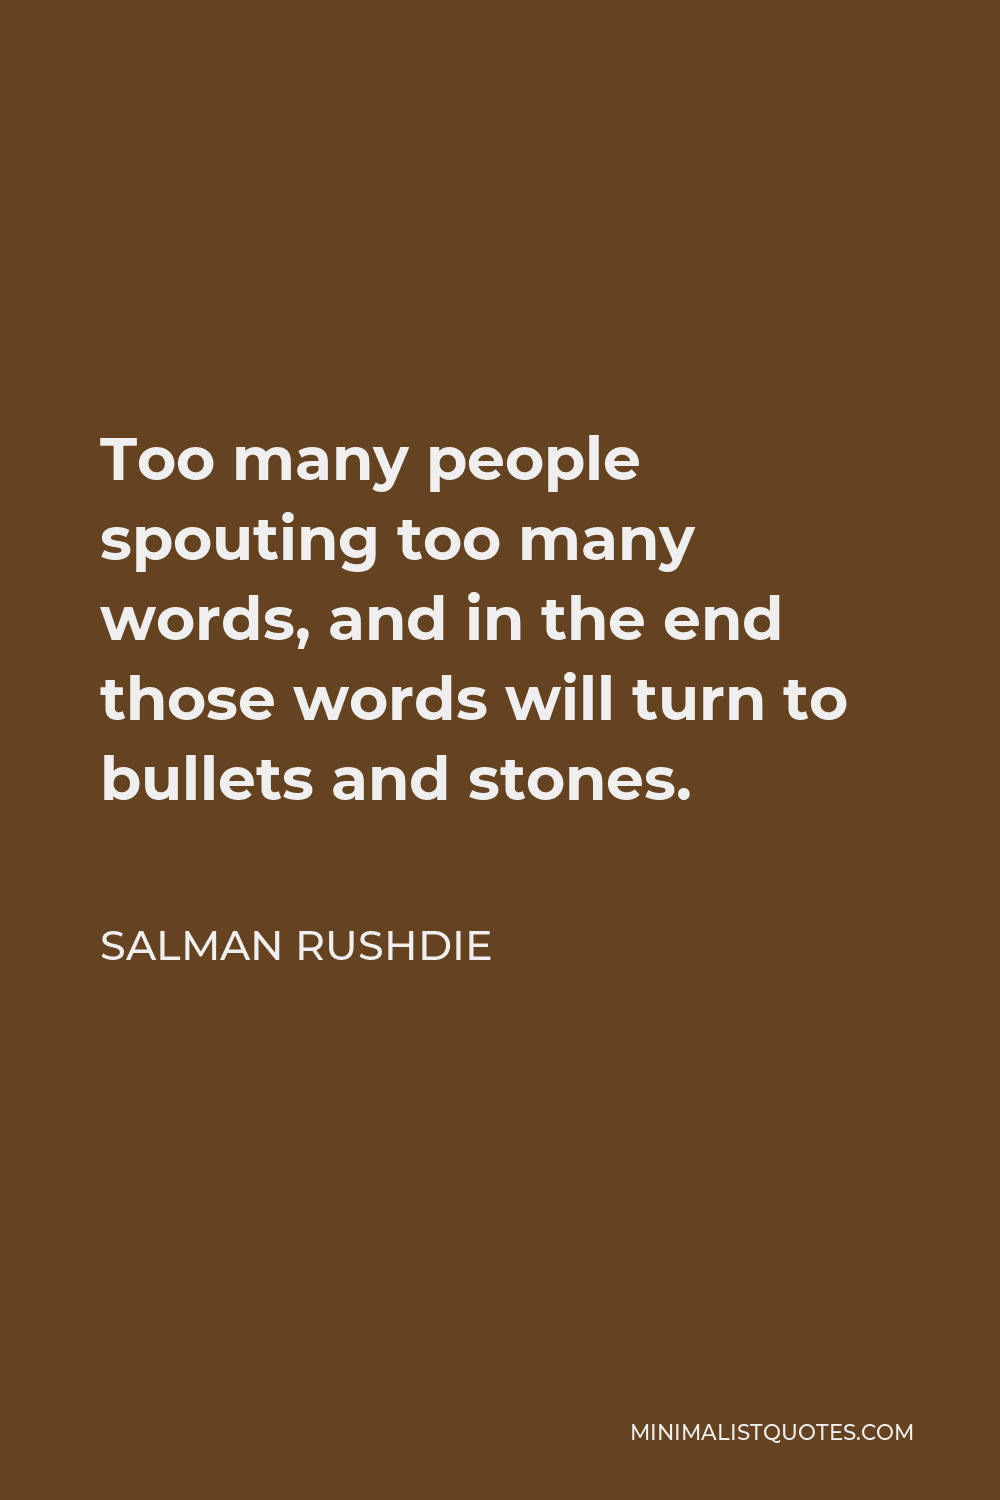 Salman Rushdie Quote - Too many people spouting too many words, and in the end those words will turn to bullets and stones.